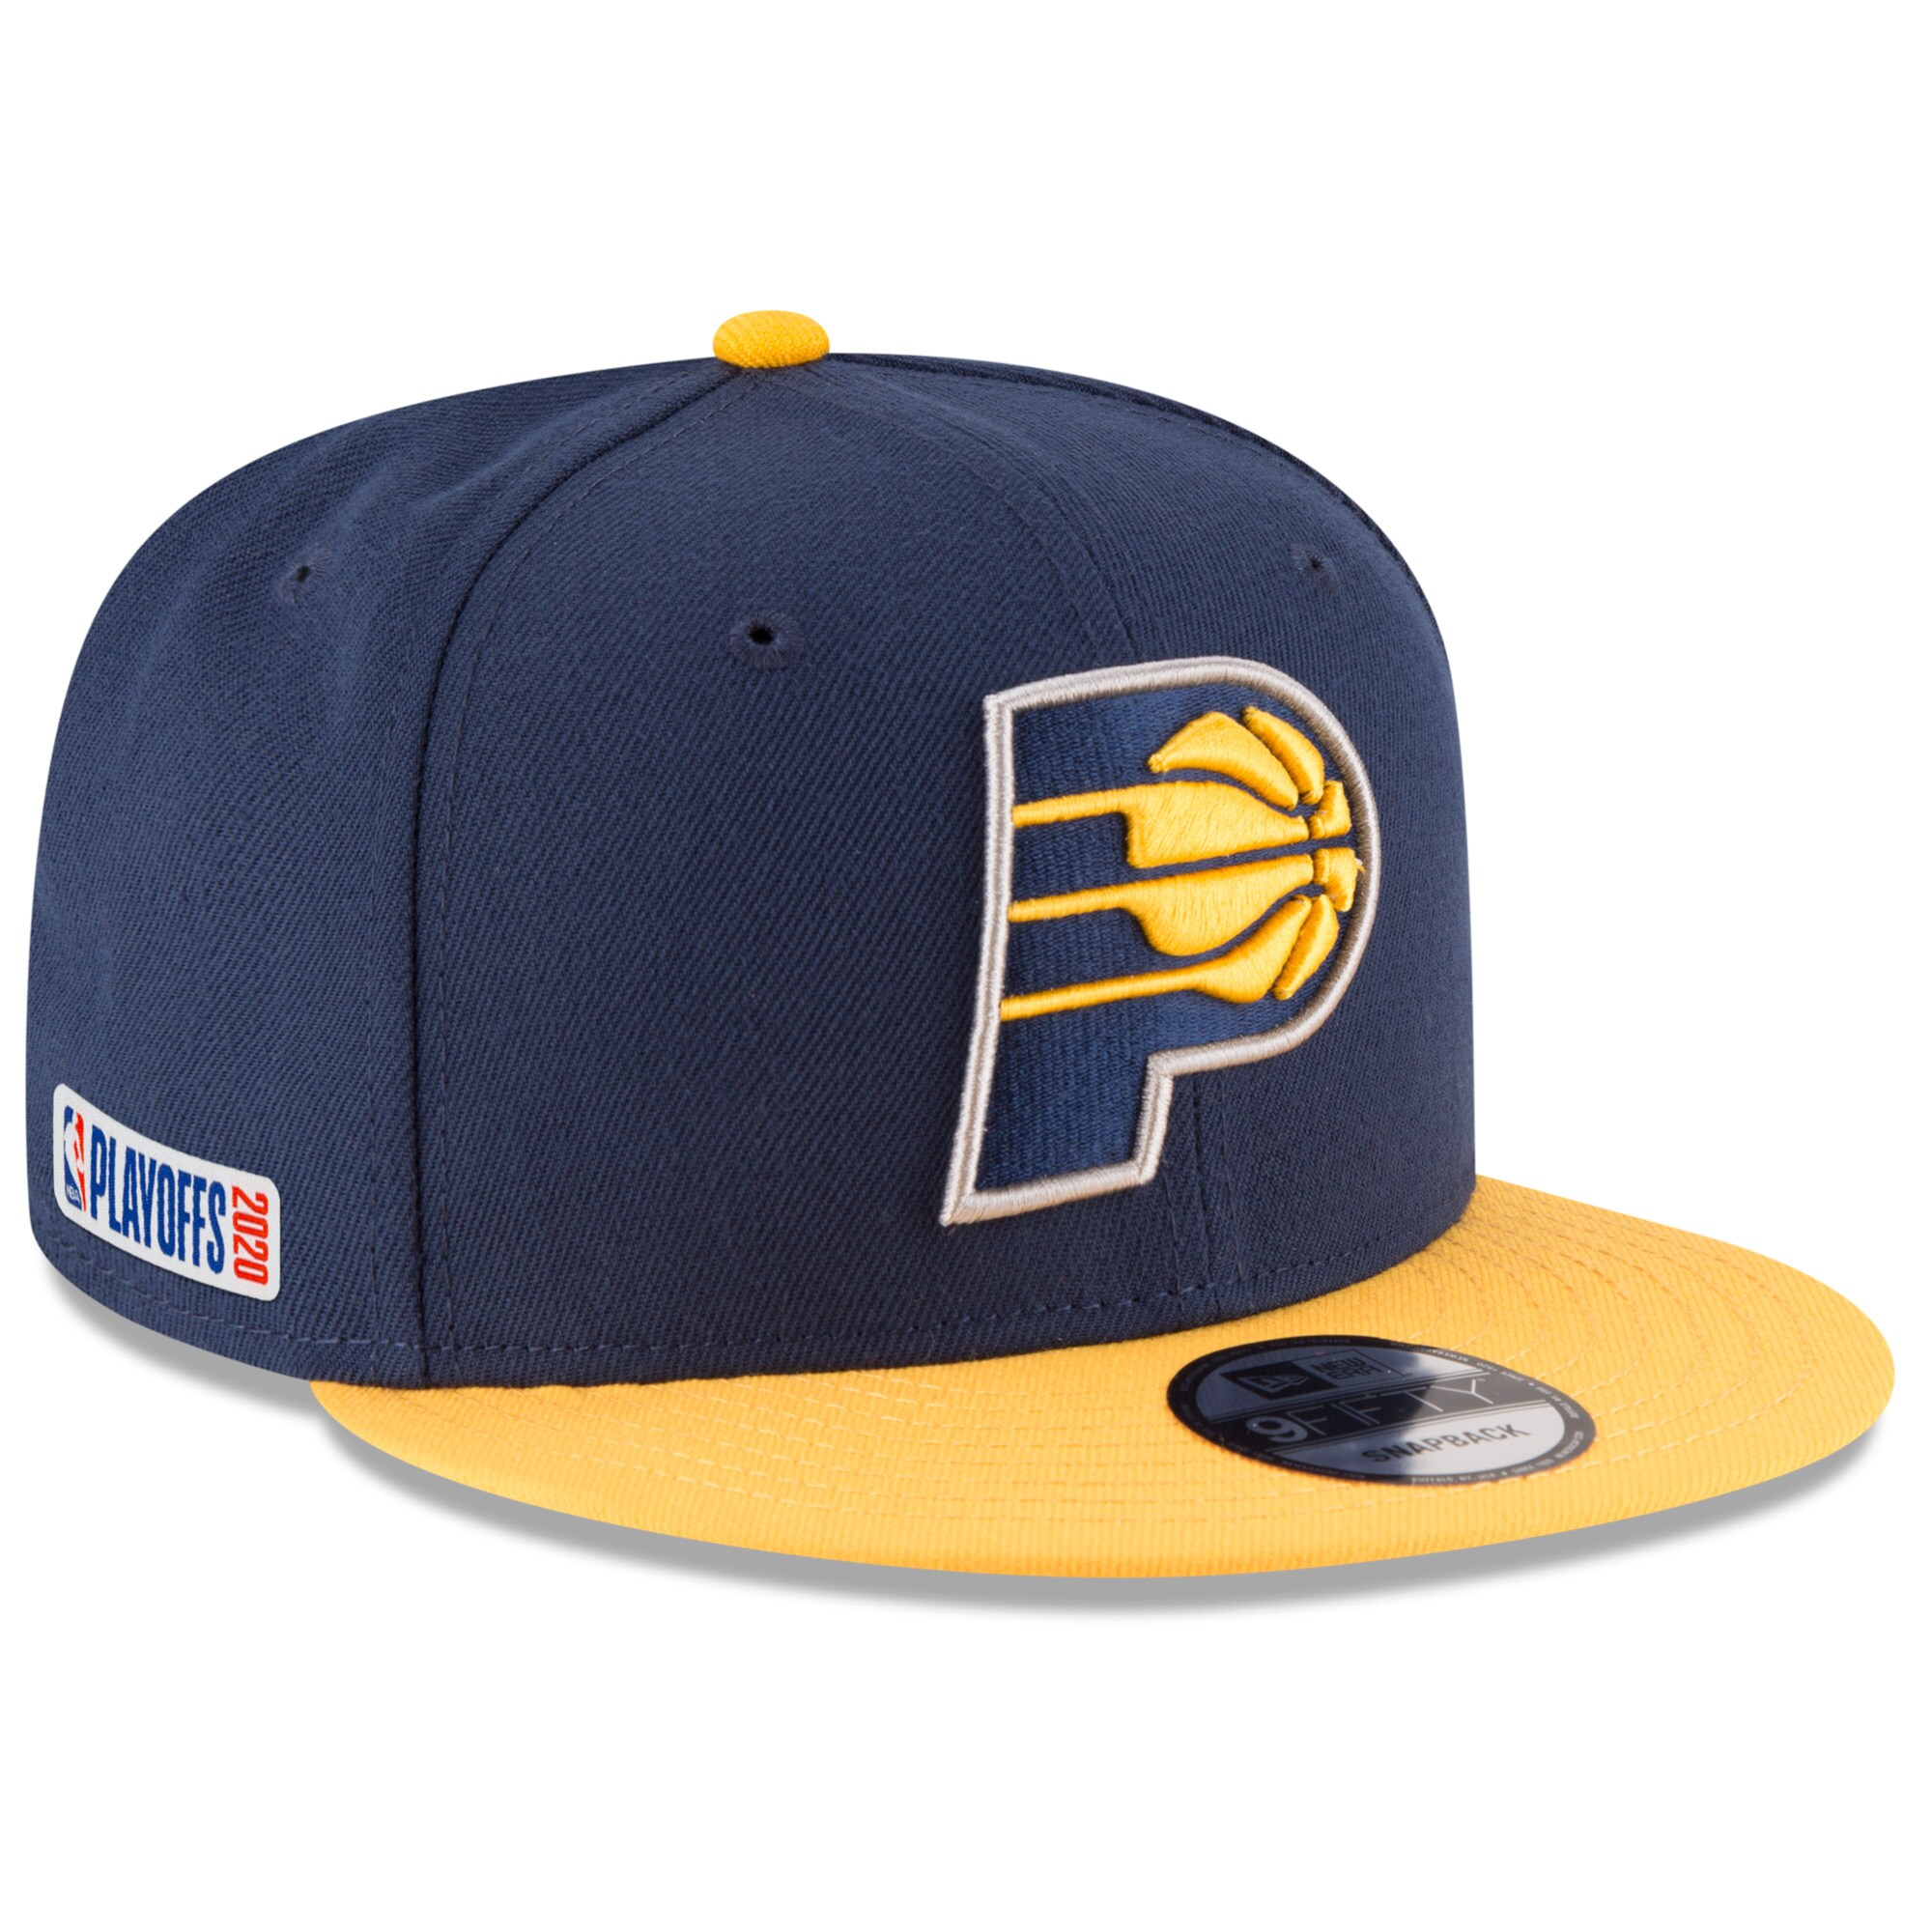 Indiana Pacers New Era 2020 NBA Playoffs Bound 2-Tone 9FIFTY Snapback Adjustable Hat - Navy